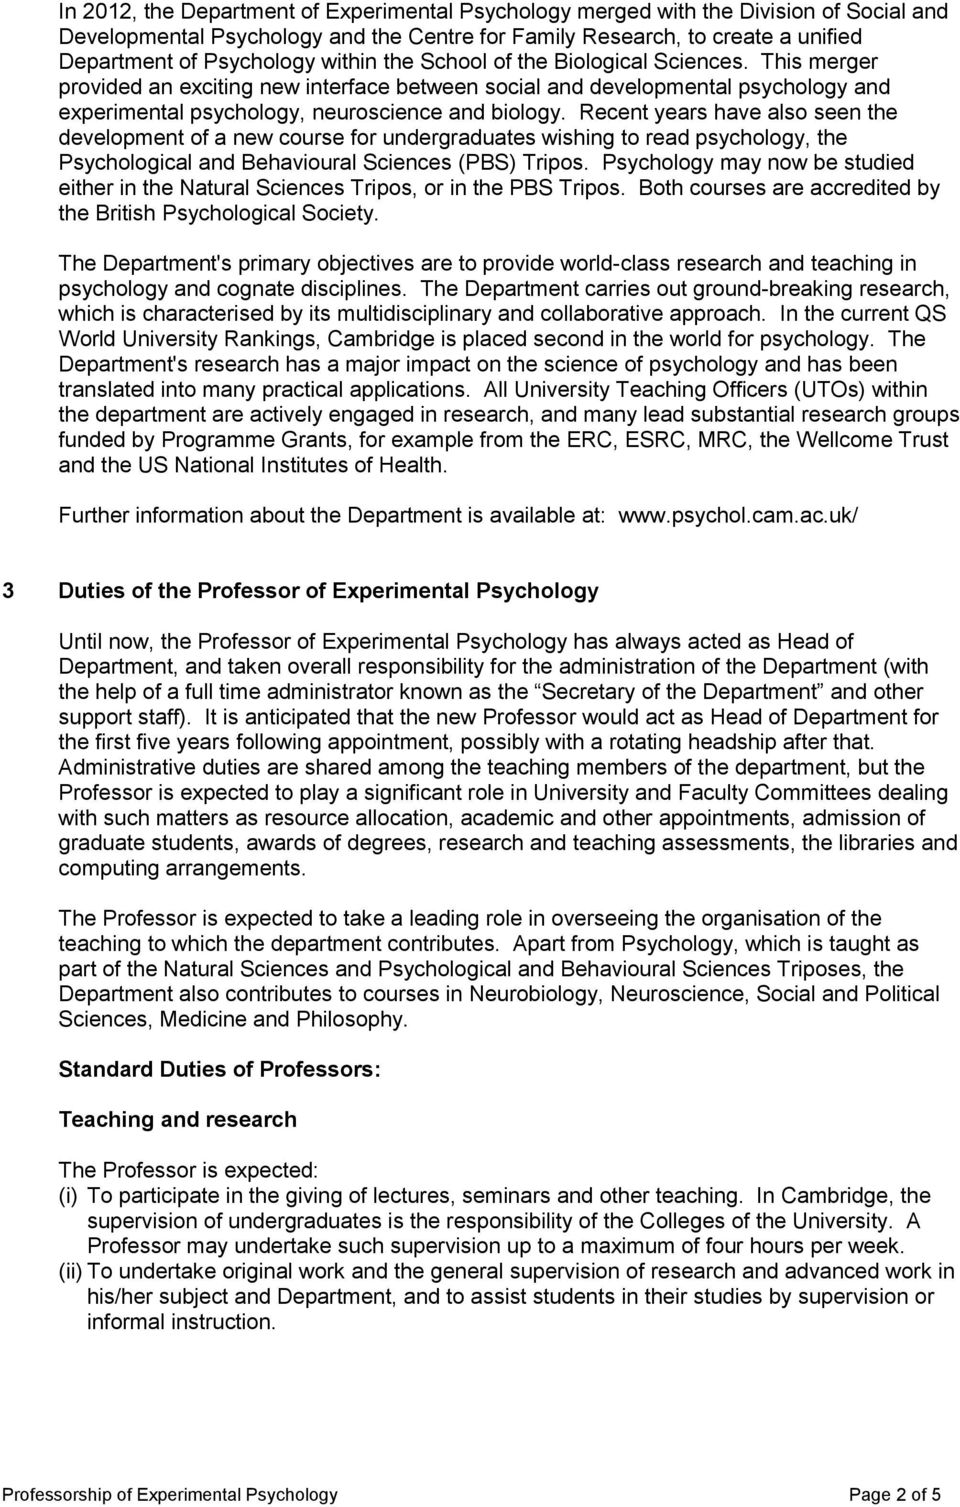 Recent years have also seen the development of a new course for undergraduates wishing to read psychology, the Psychological and Behavioural Sciences (PBS) Tripos.